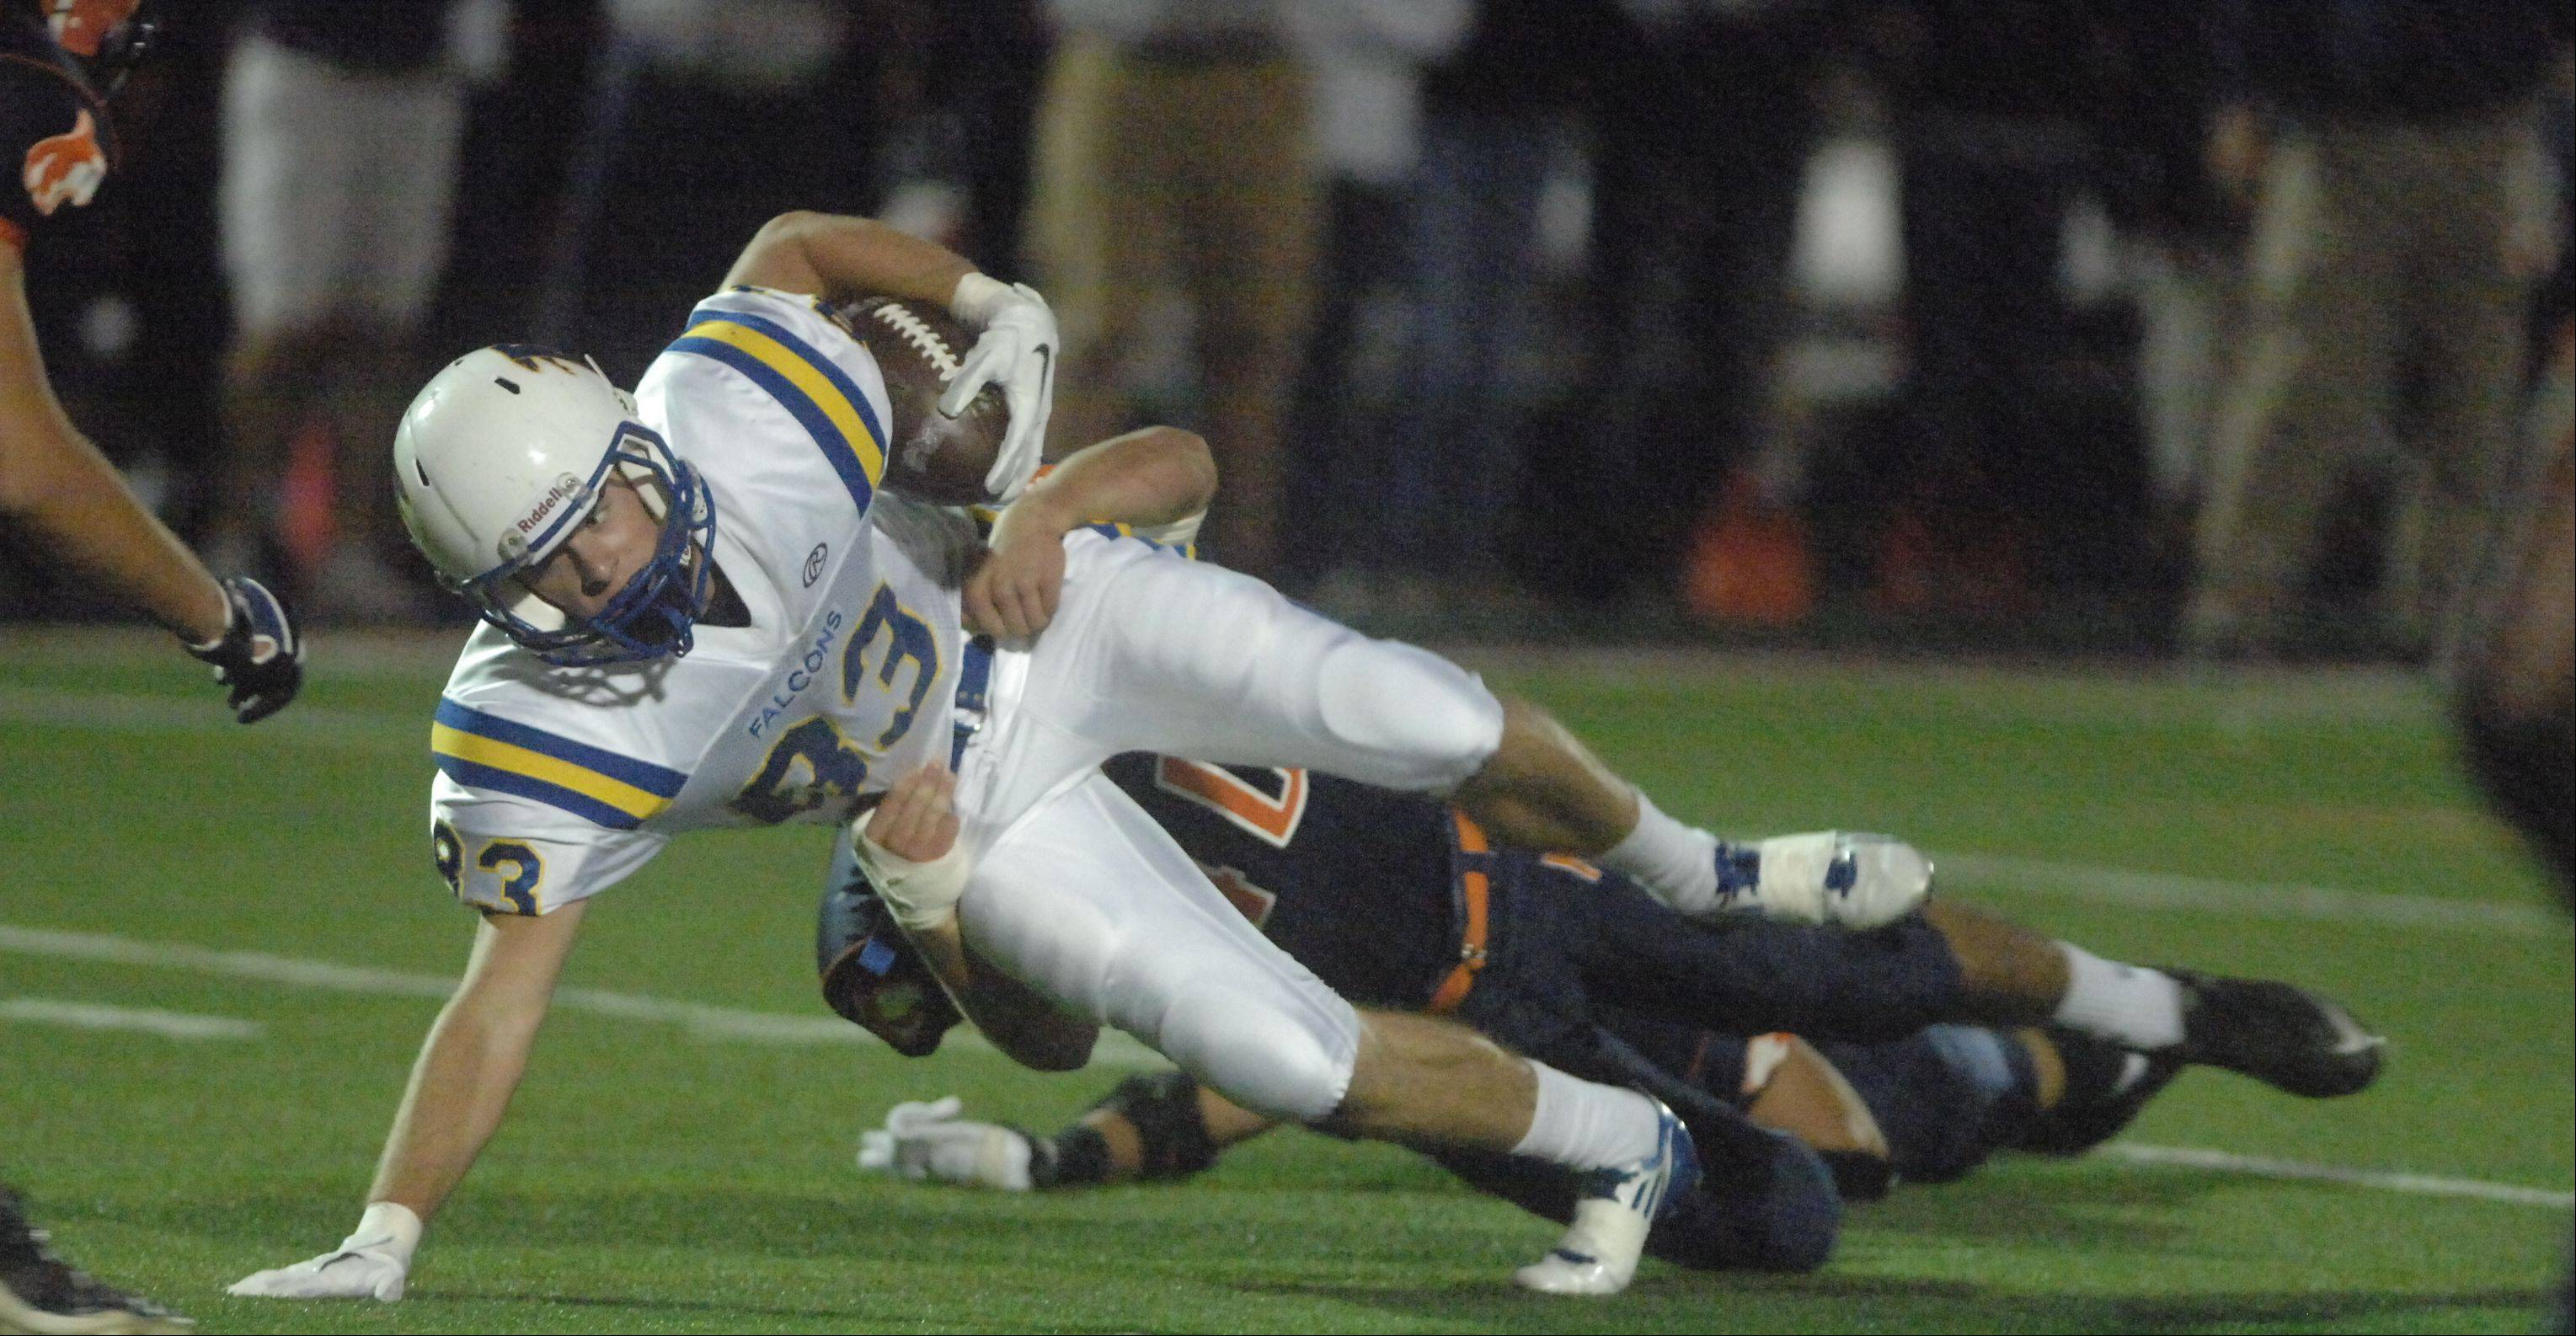 Photos from the Wheaton North at Naperville North football game Friday, September 7.